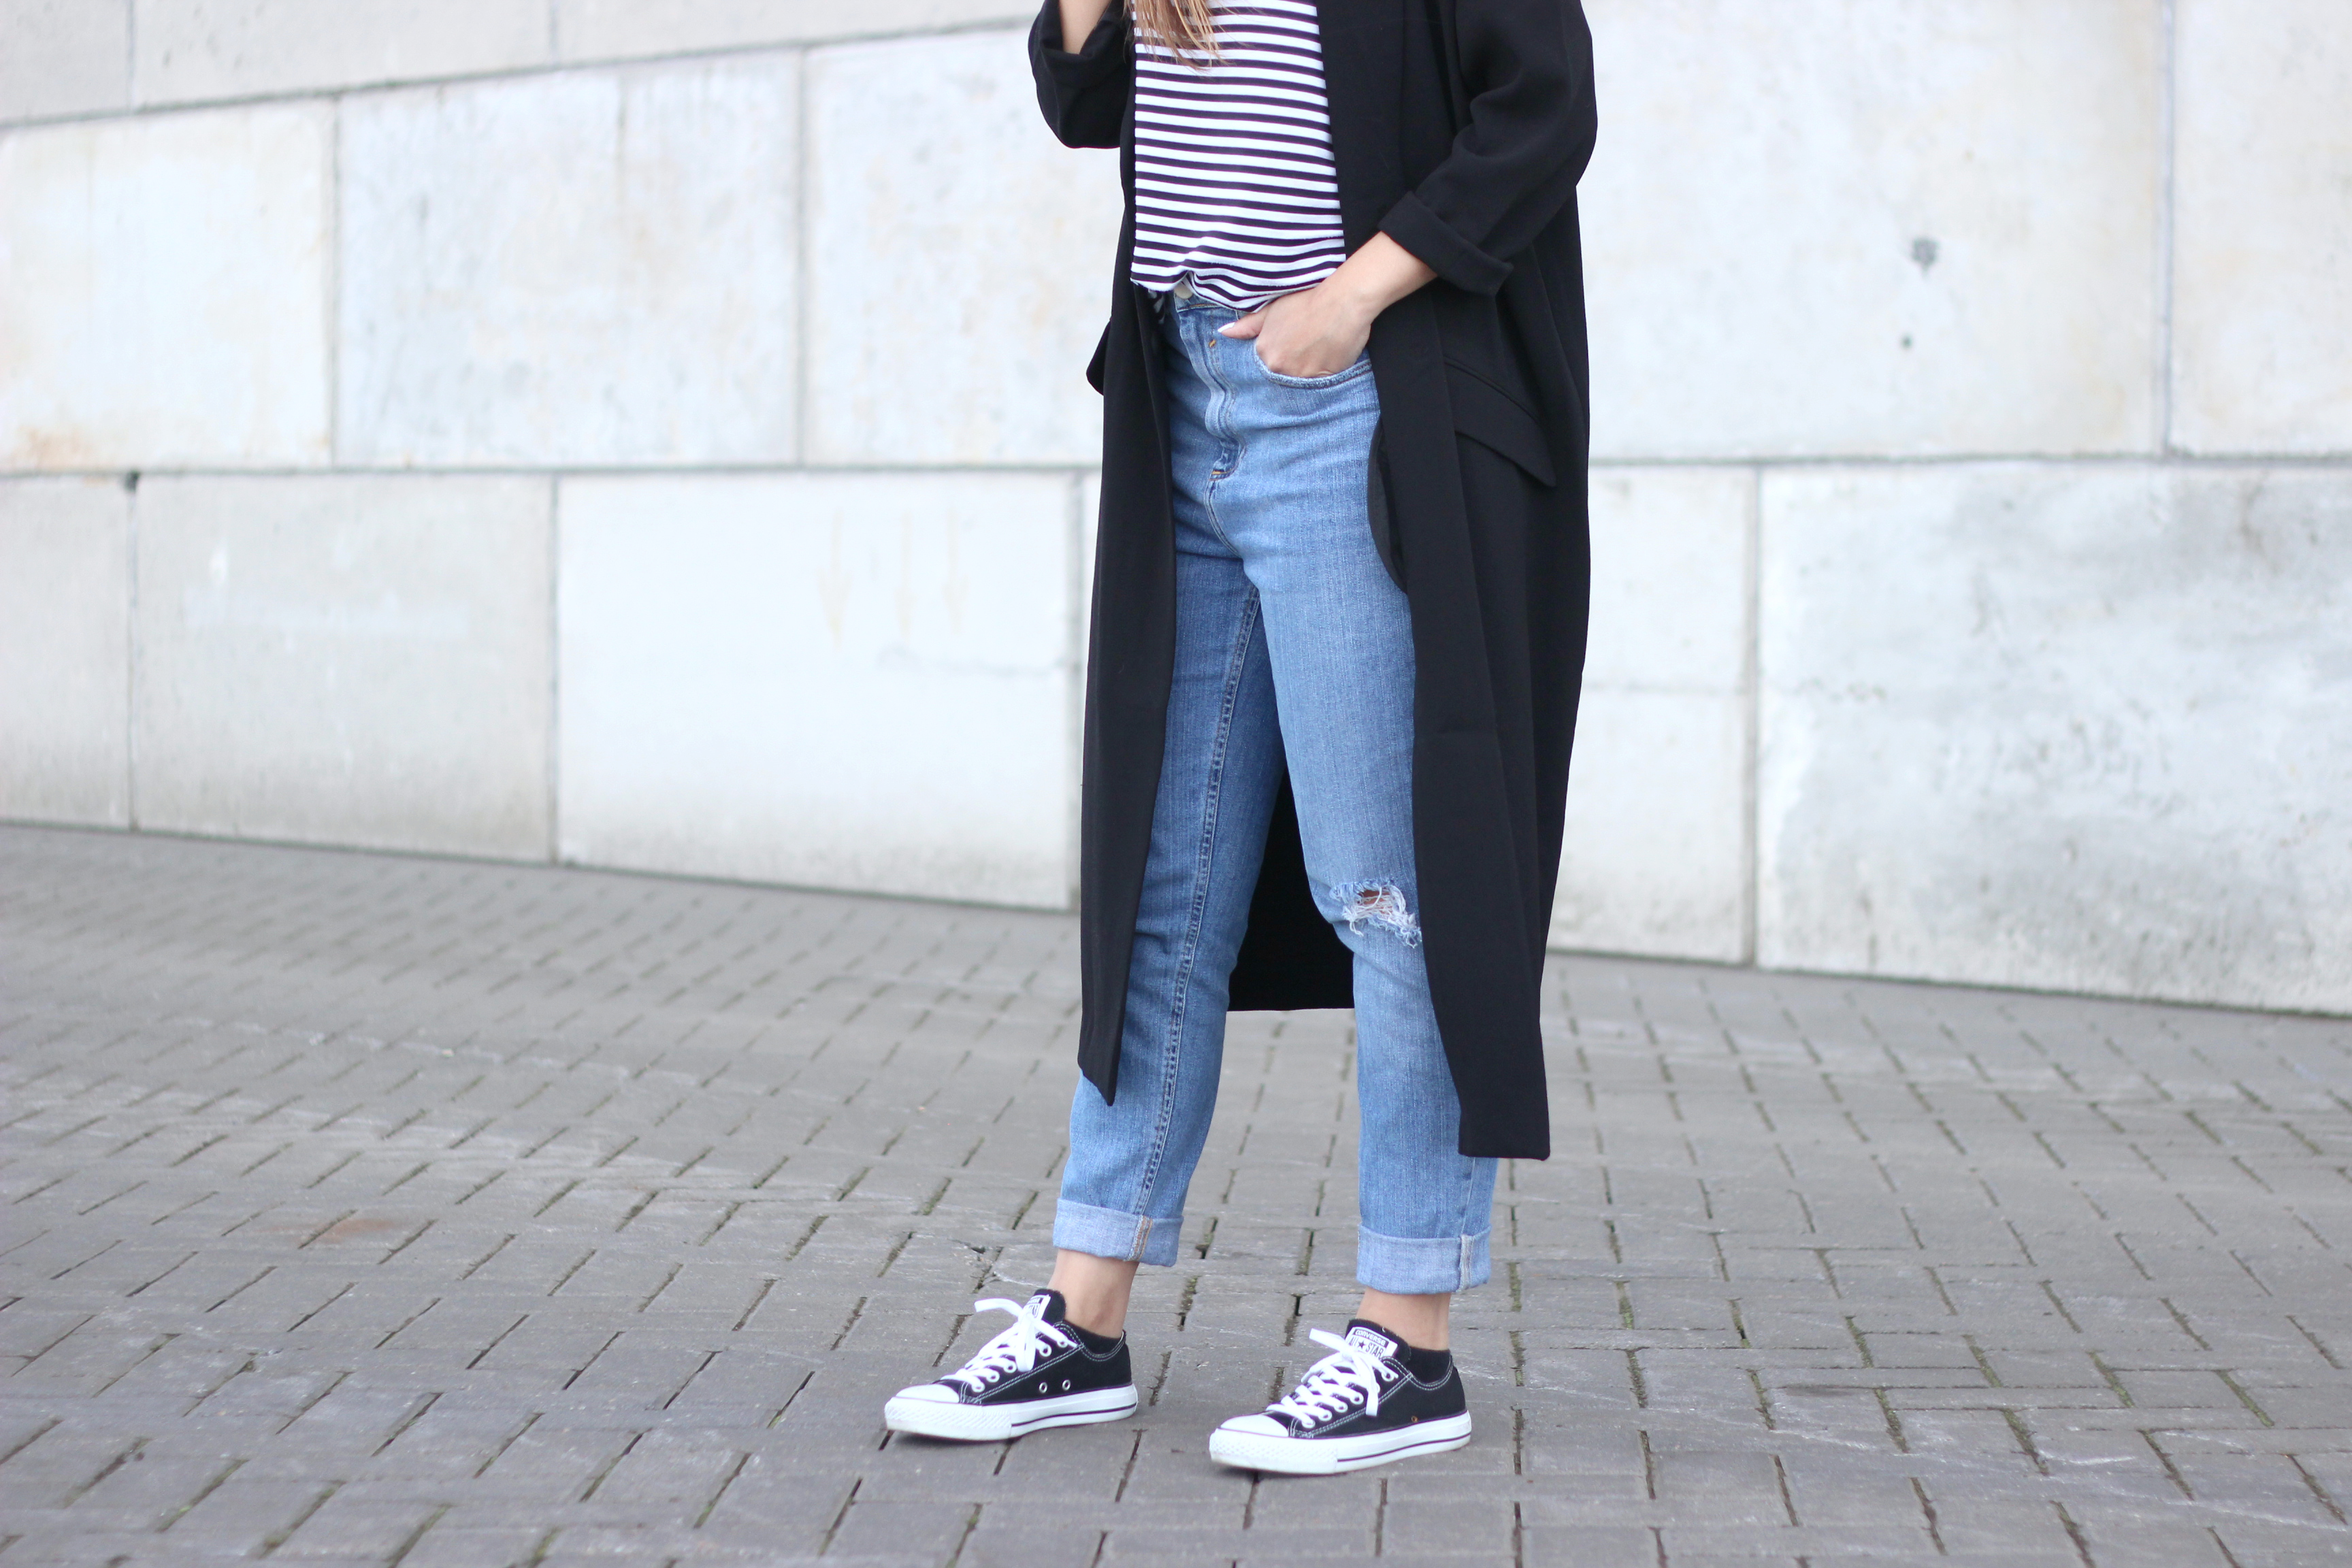 converse-trainers-all-star-kicks-combination-simplicity-basic-outfit